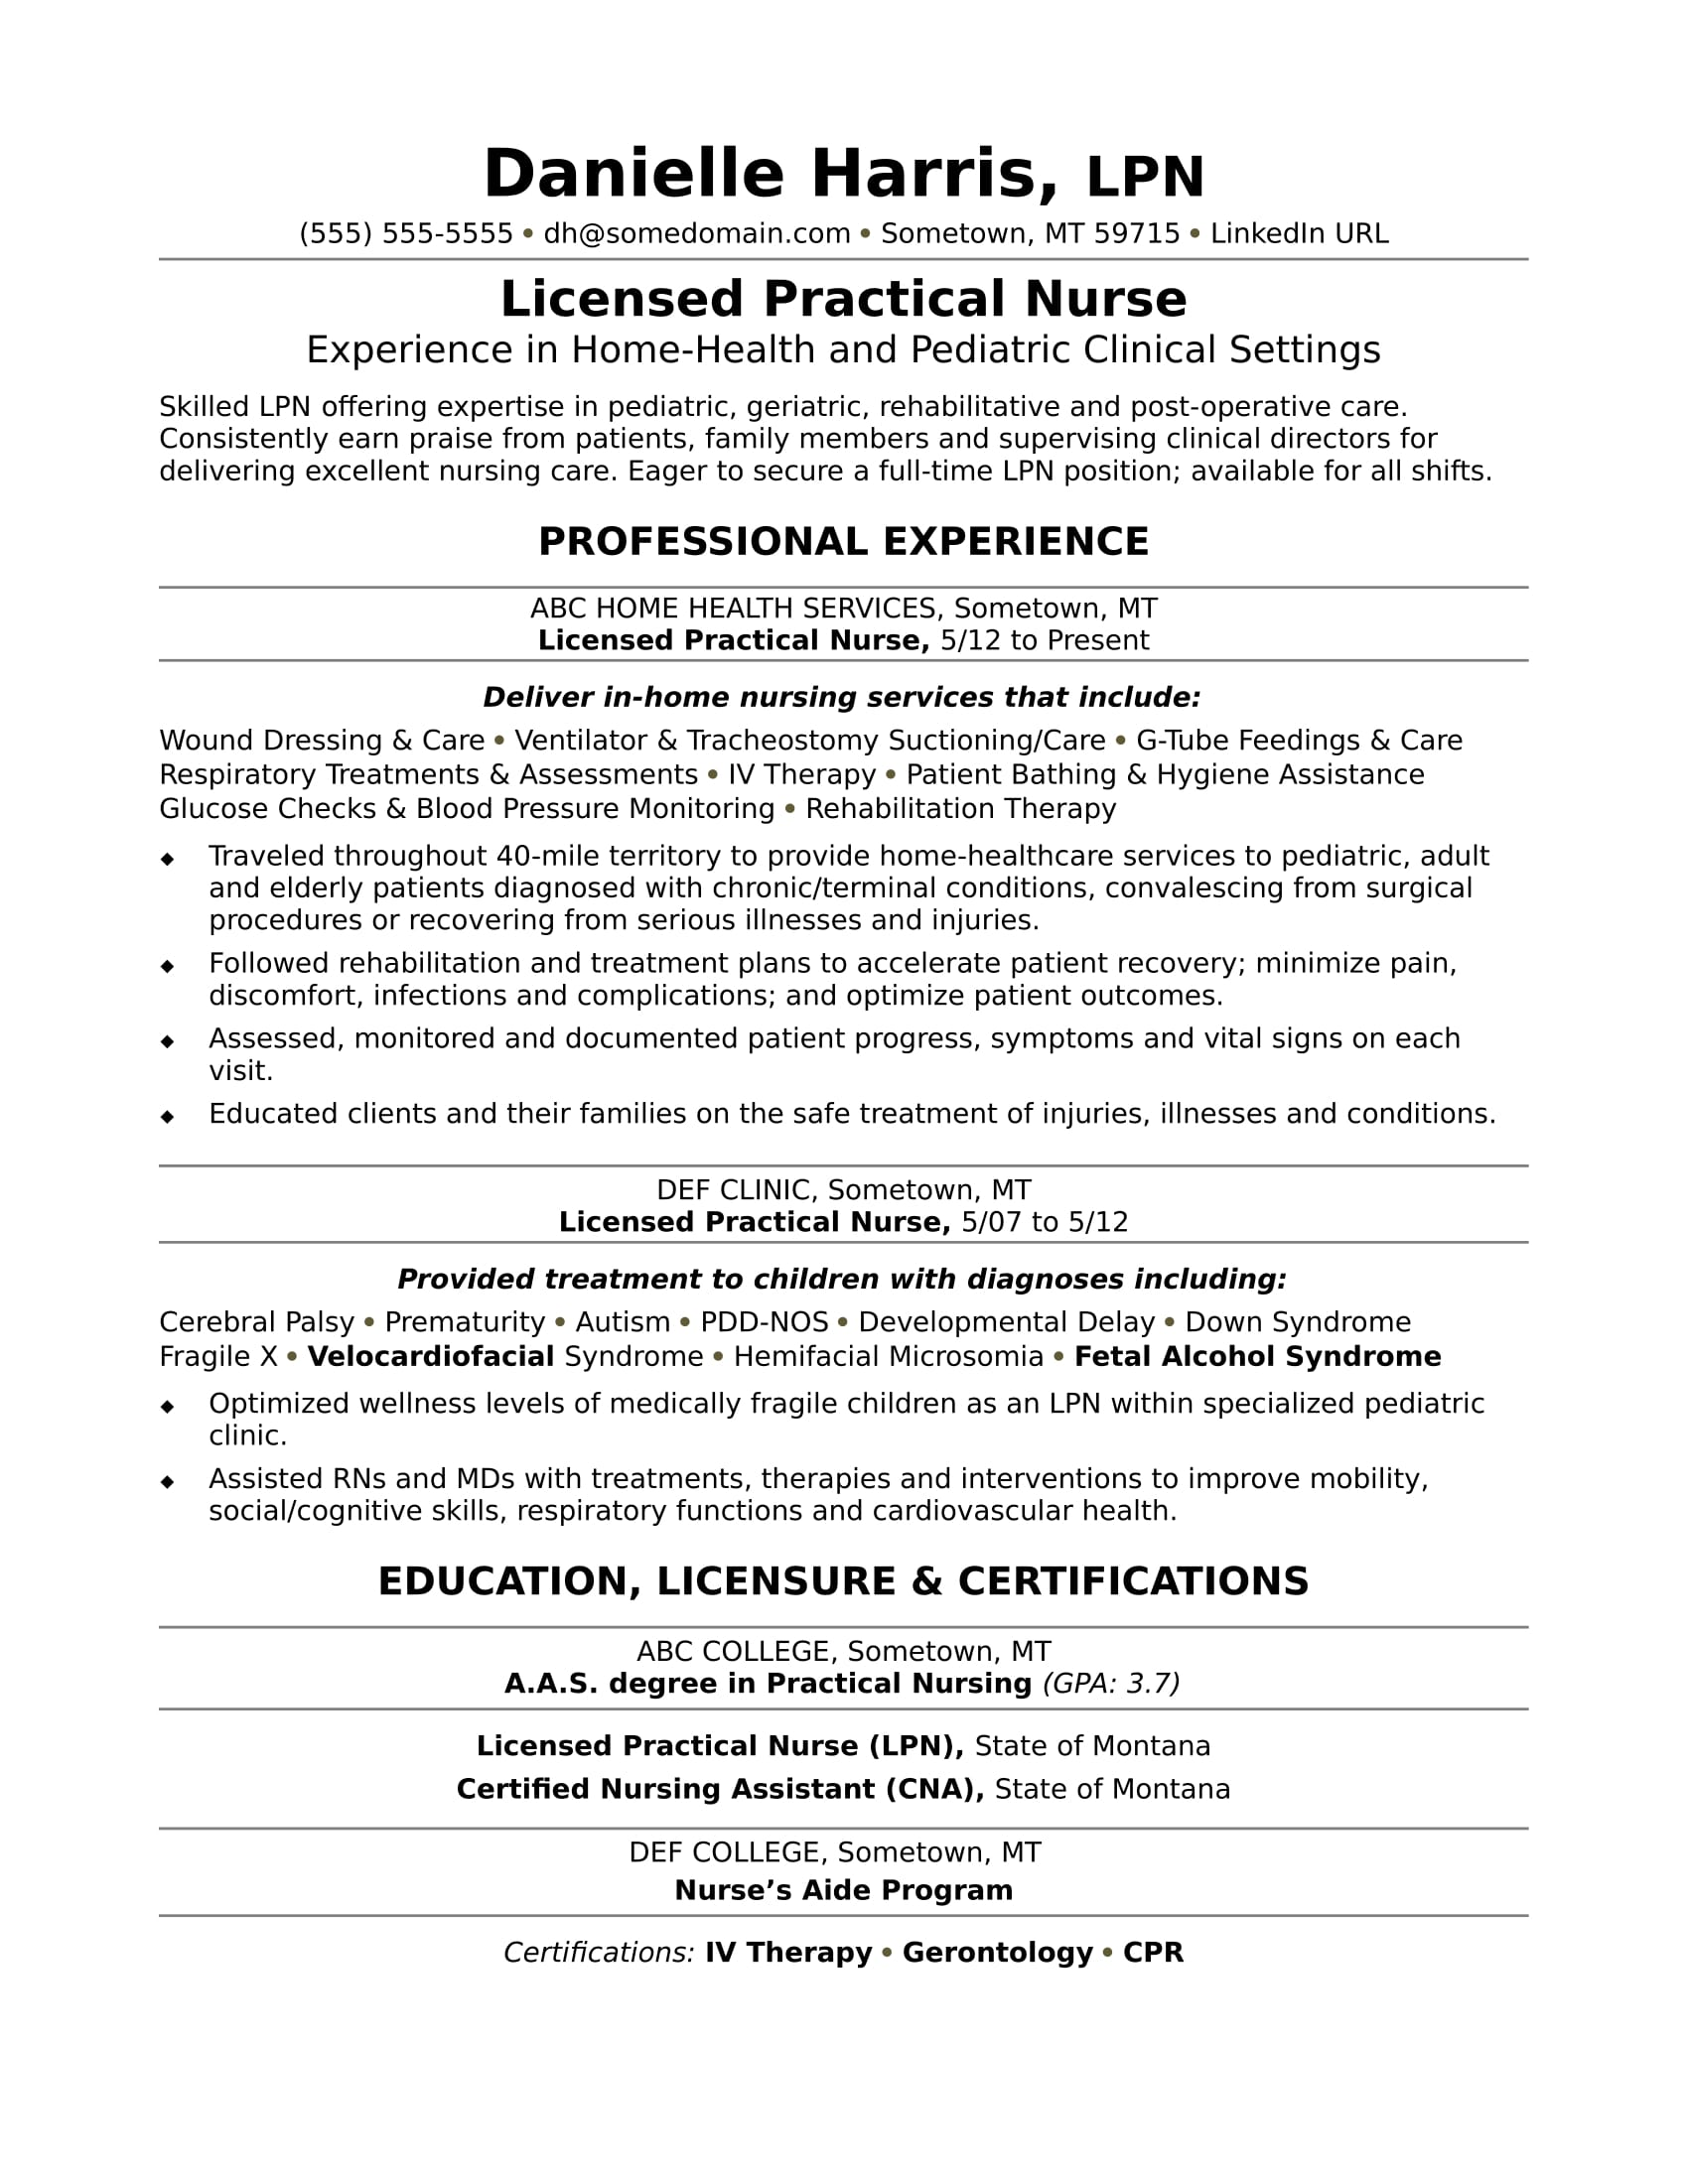 Licensed practical nurse resume sample monster licensed practical nurse resume sample thecheapjerseys